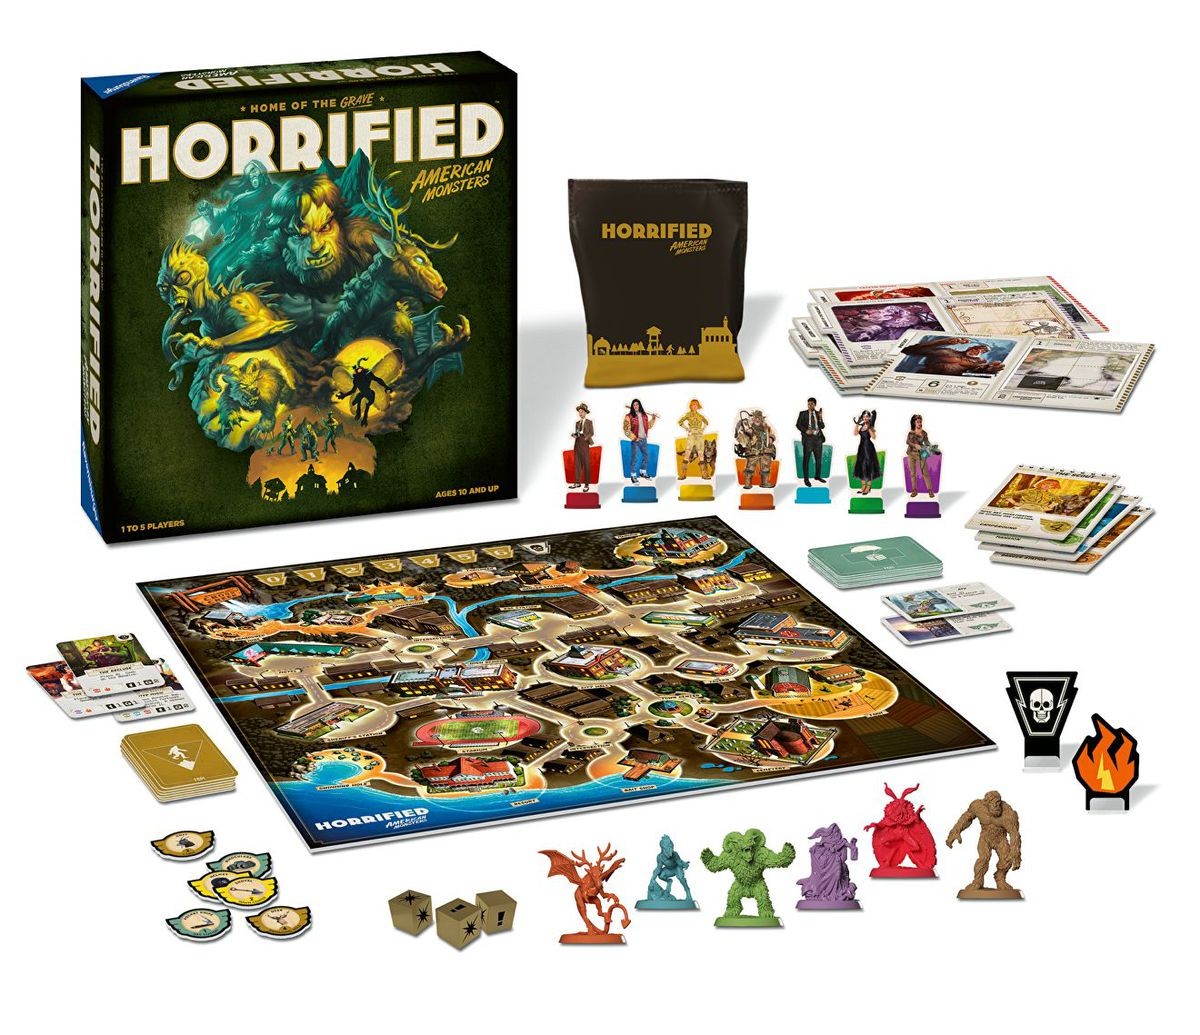 Press photos for Horrified: American Monsters showing the box art and bits.